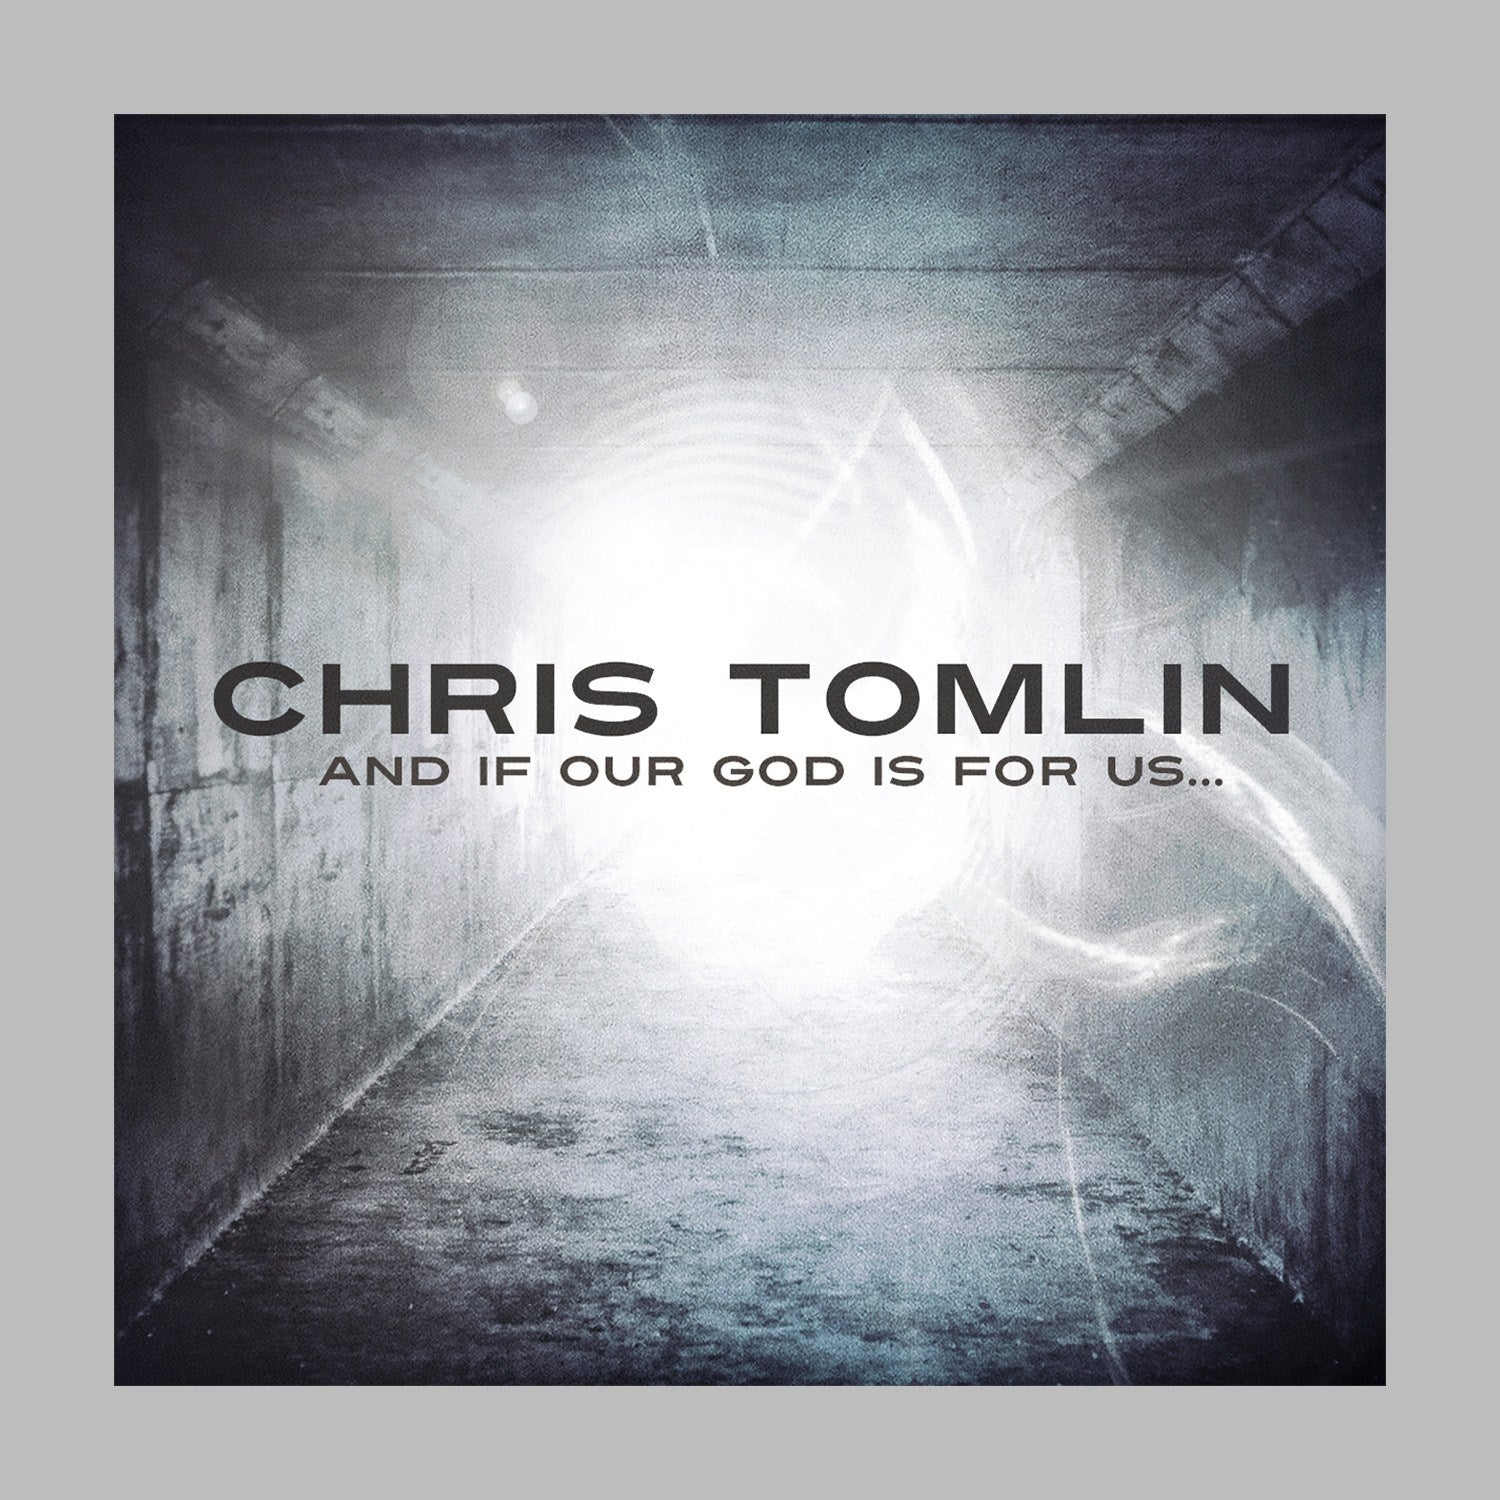 Chris Tomlin Music - passion resources